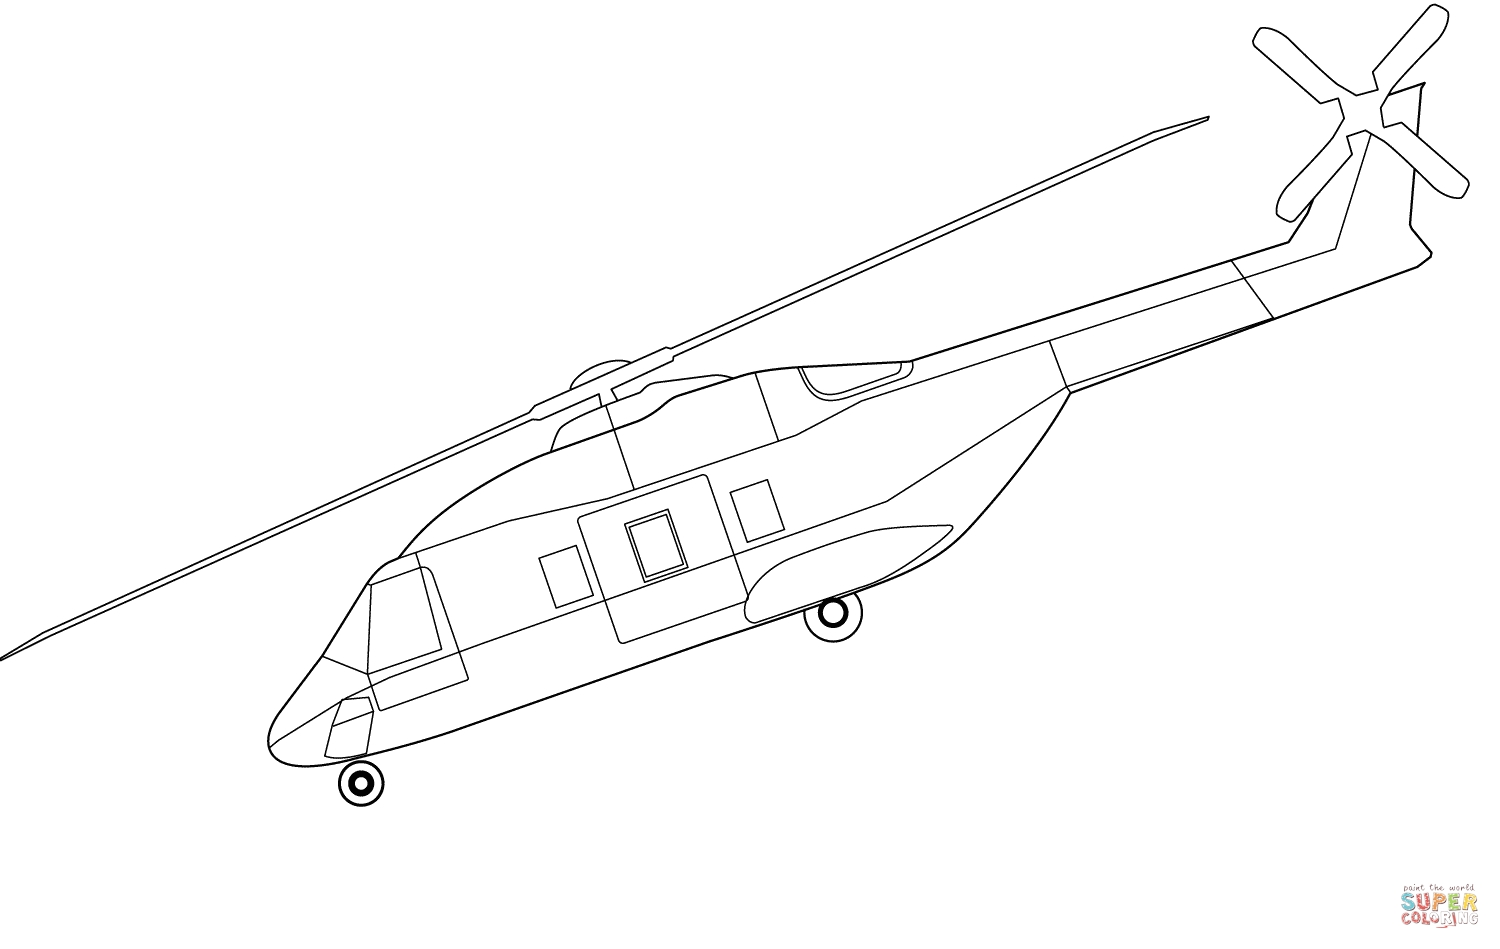 Balloon Coloring Pages - Ausmalbild Nh90 Hubschrauber